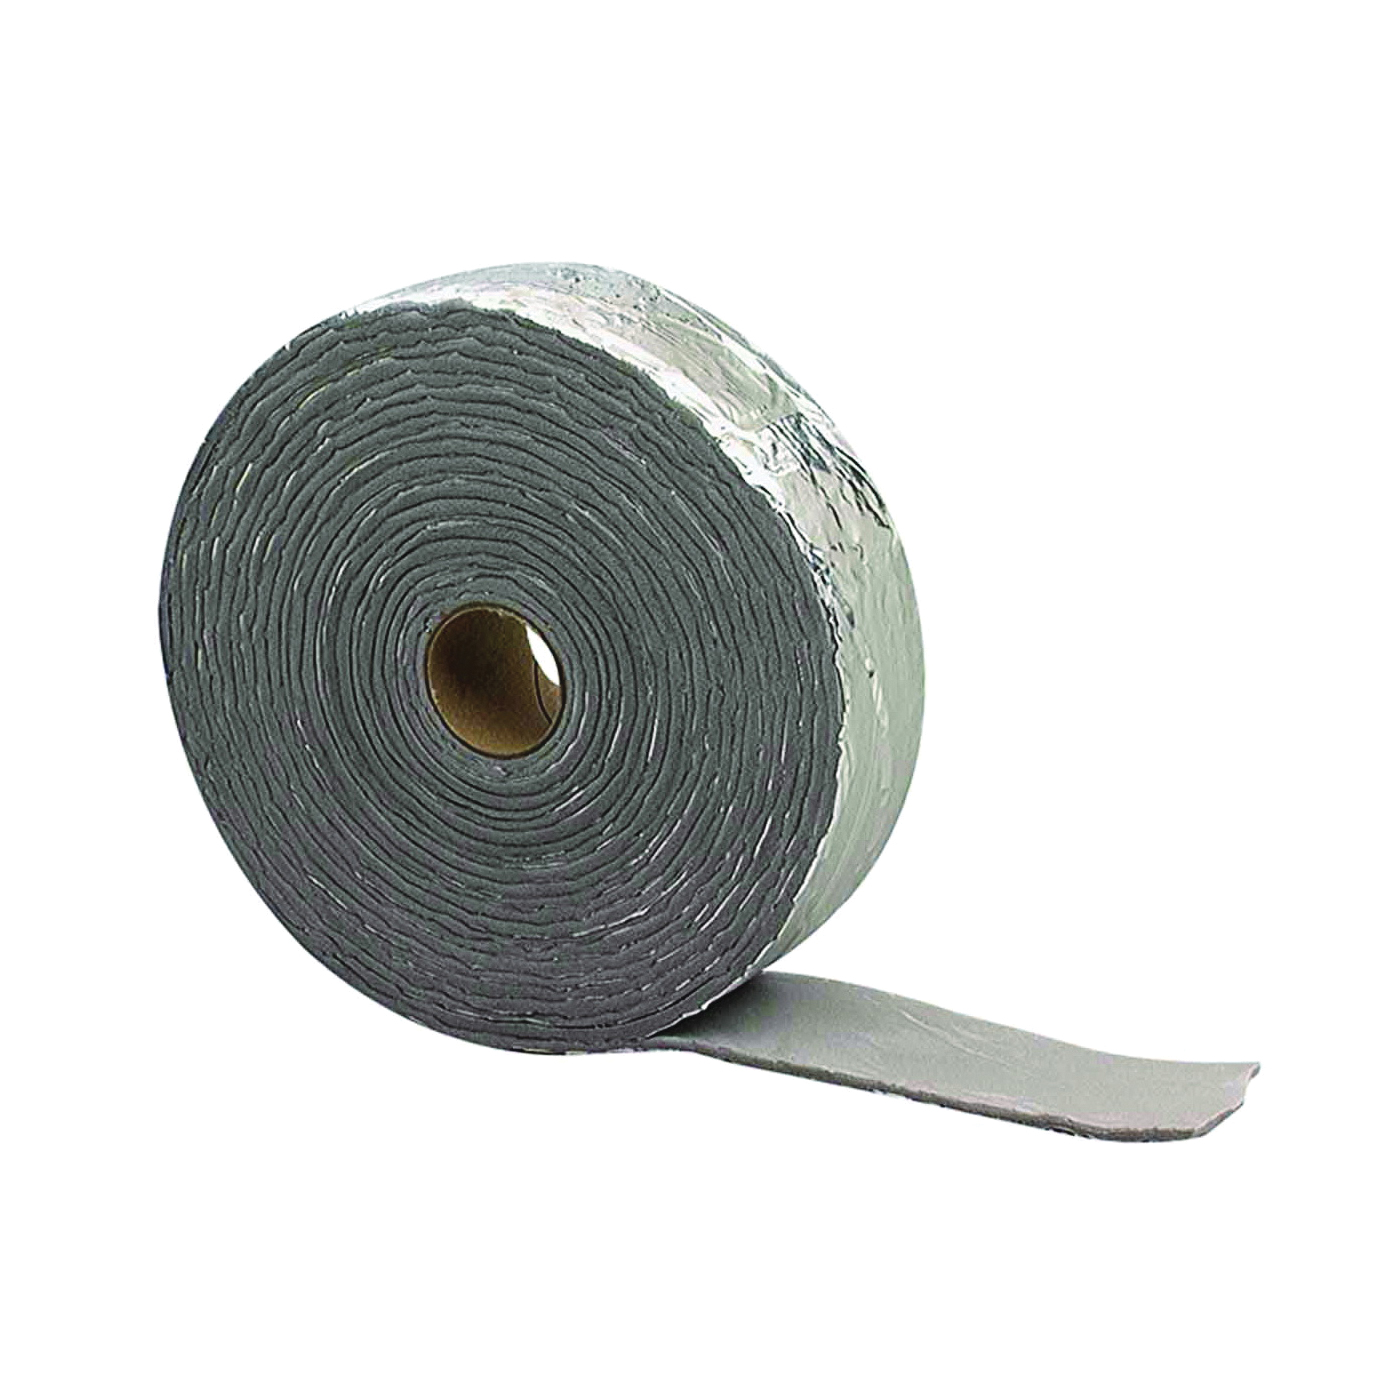 Picture of M-D 02394 Pipe Insulation Wrap, 30 ft L, 1/8 in Thick, PVC, Black/Silver